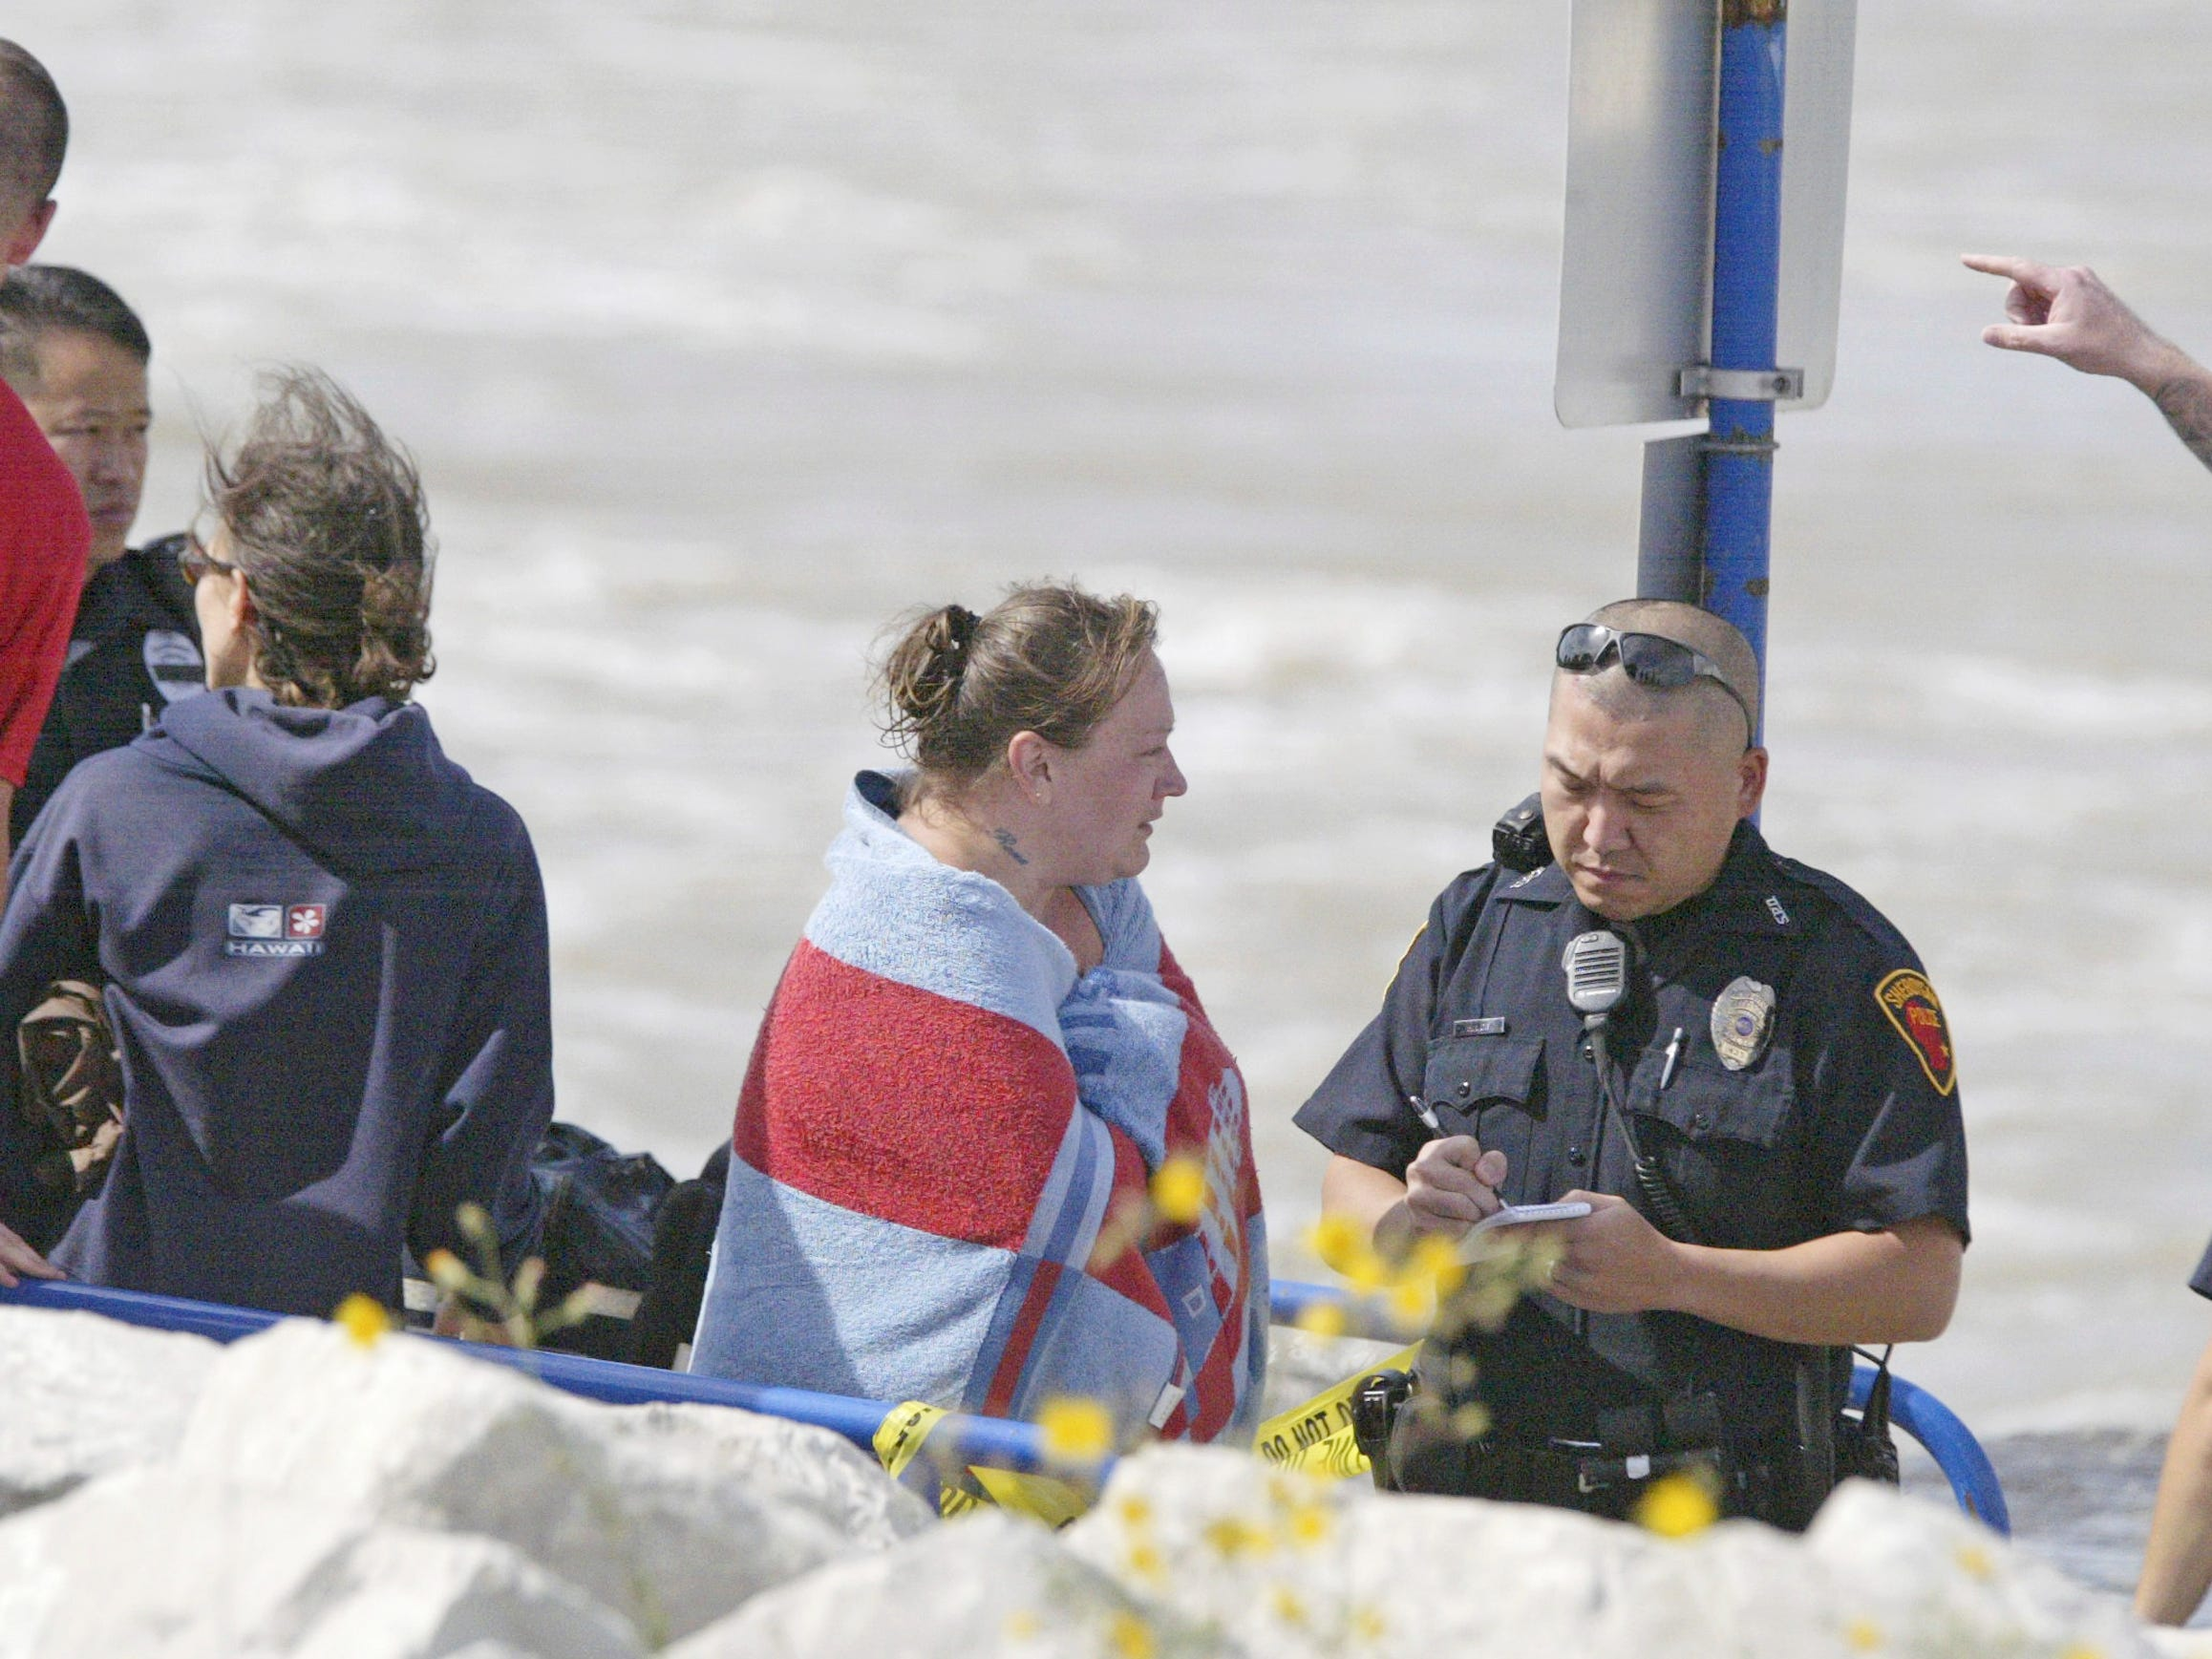 Police interview one of the rescued persons Aug. 10, 2012, near North Pier in Sheboygan, Wis.  FILE PHOTO